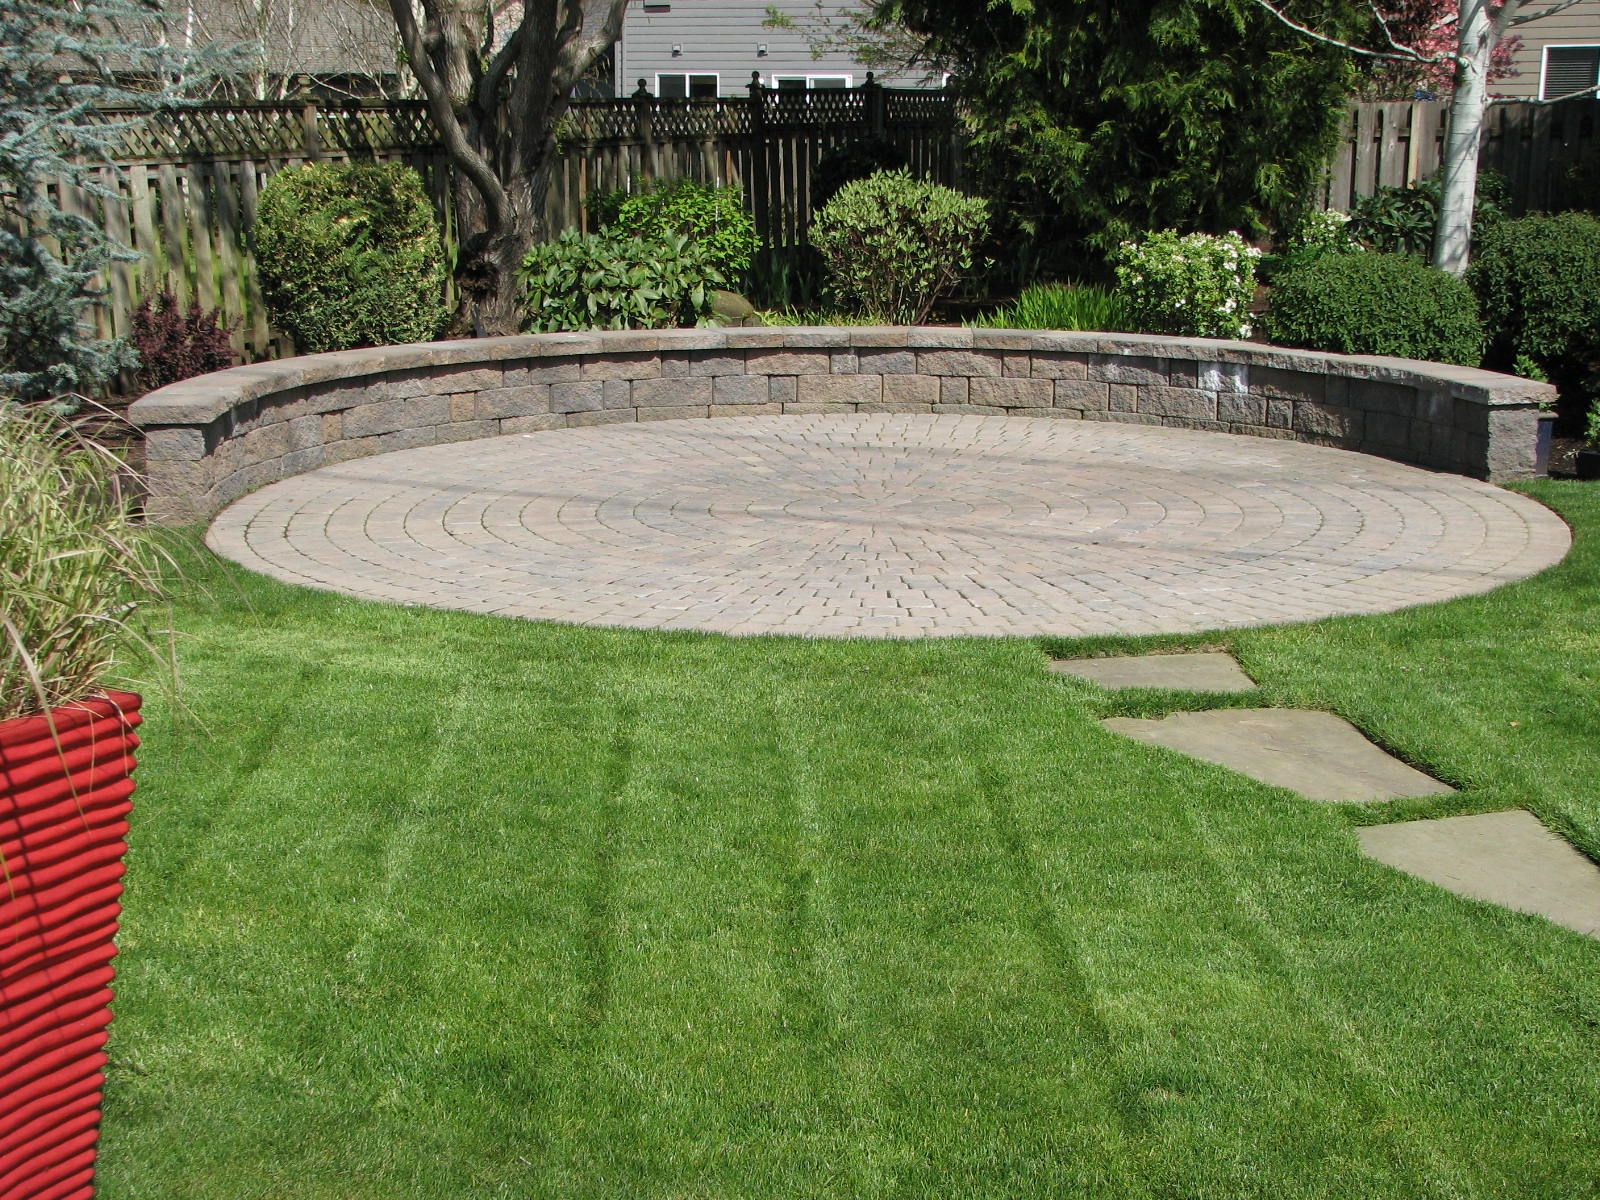 Delicieux A Circular Paver Patio And Seating Wall Create A Destination And Usable  Space In This Backyard